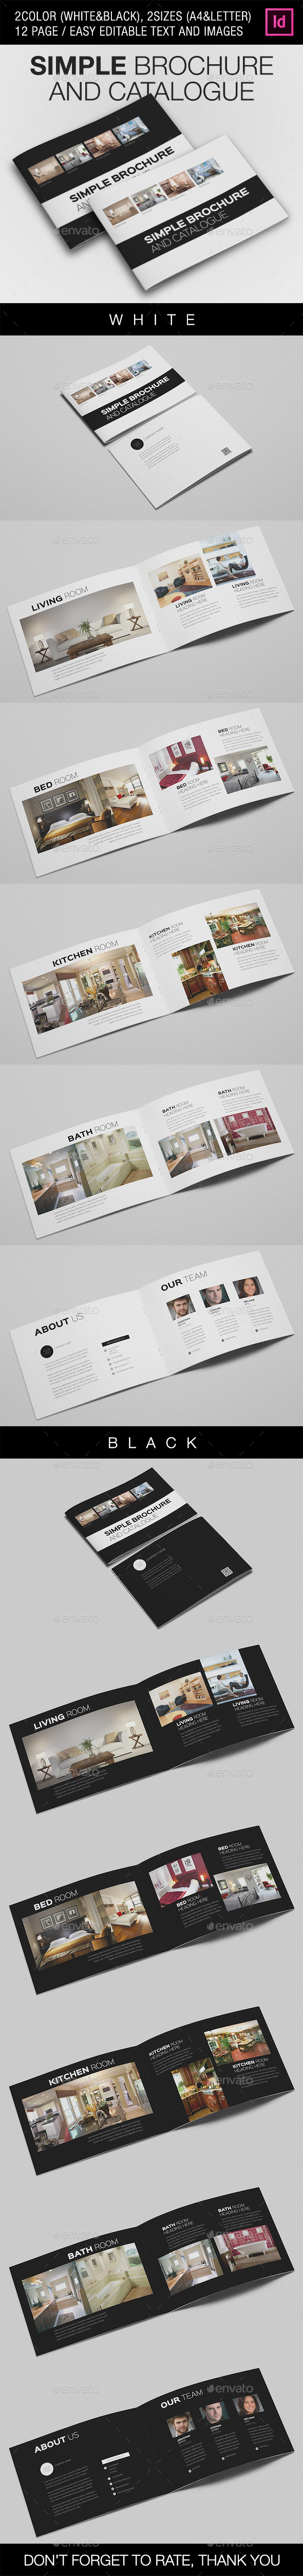 Simple Catalogue/Brochure V.2 - Brochures Print Templates